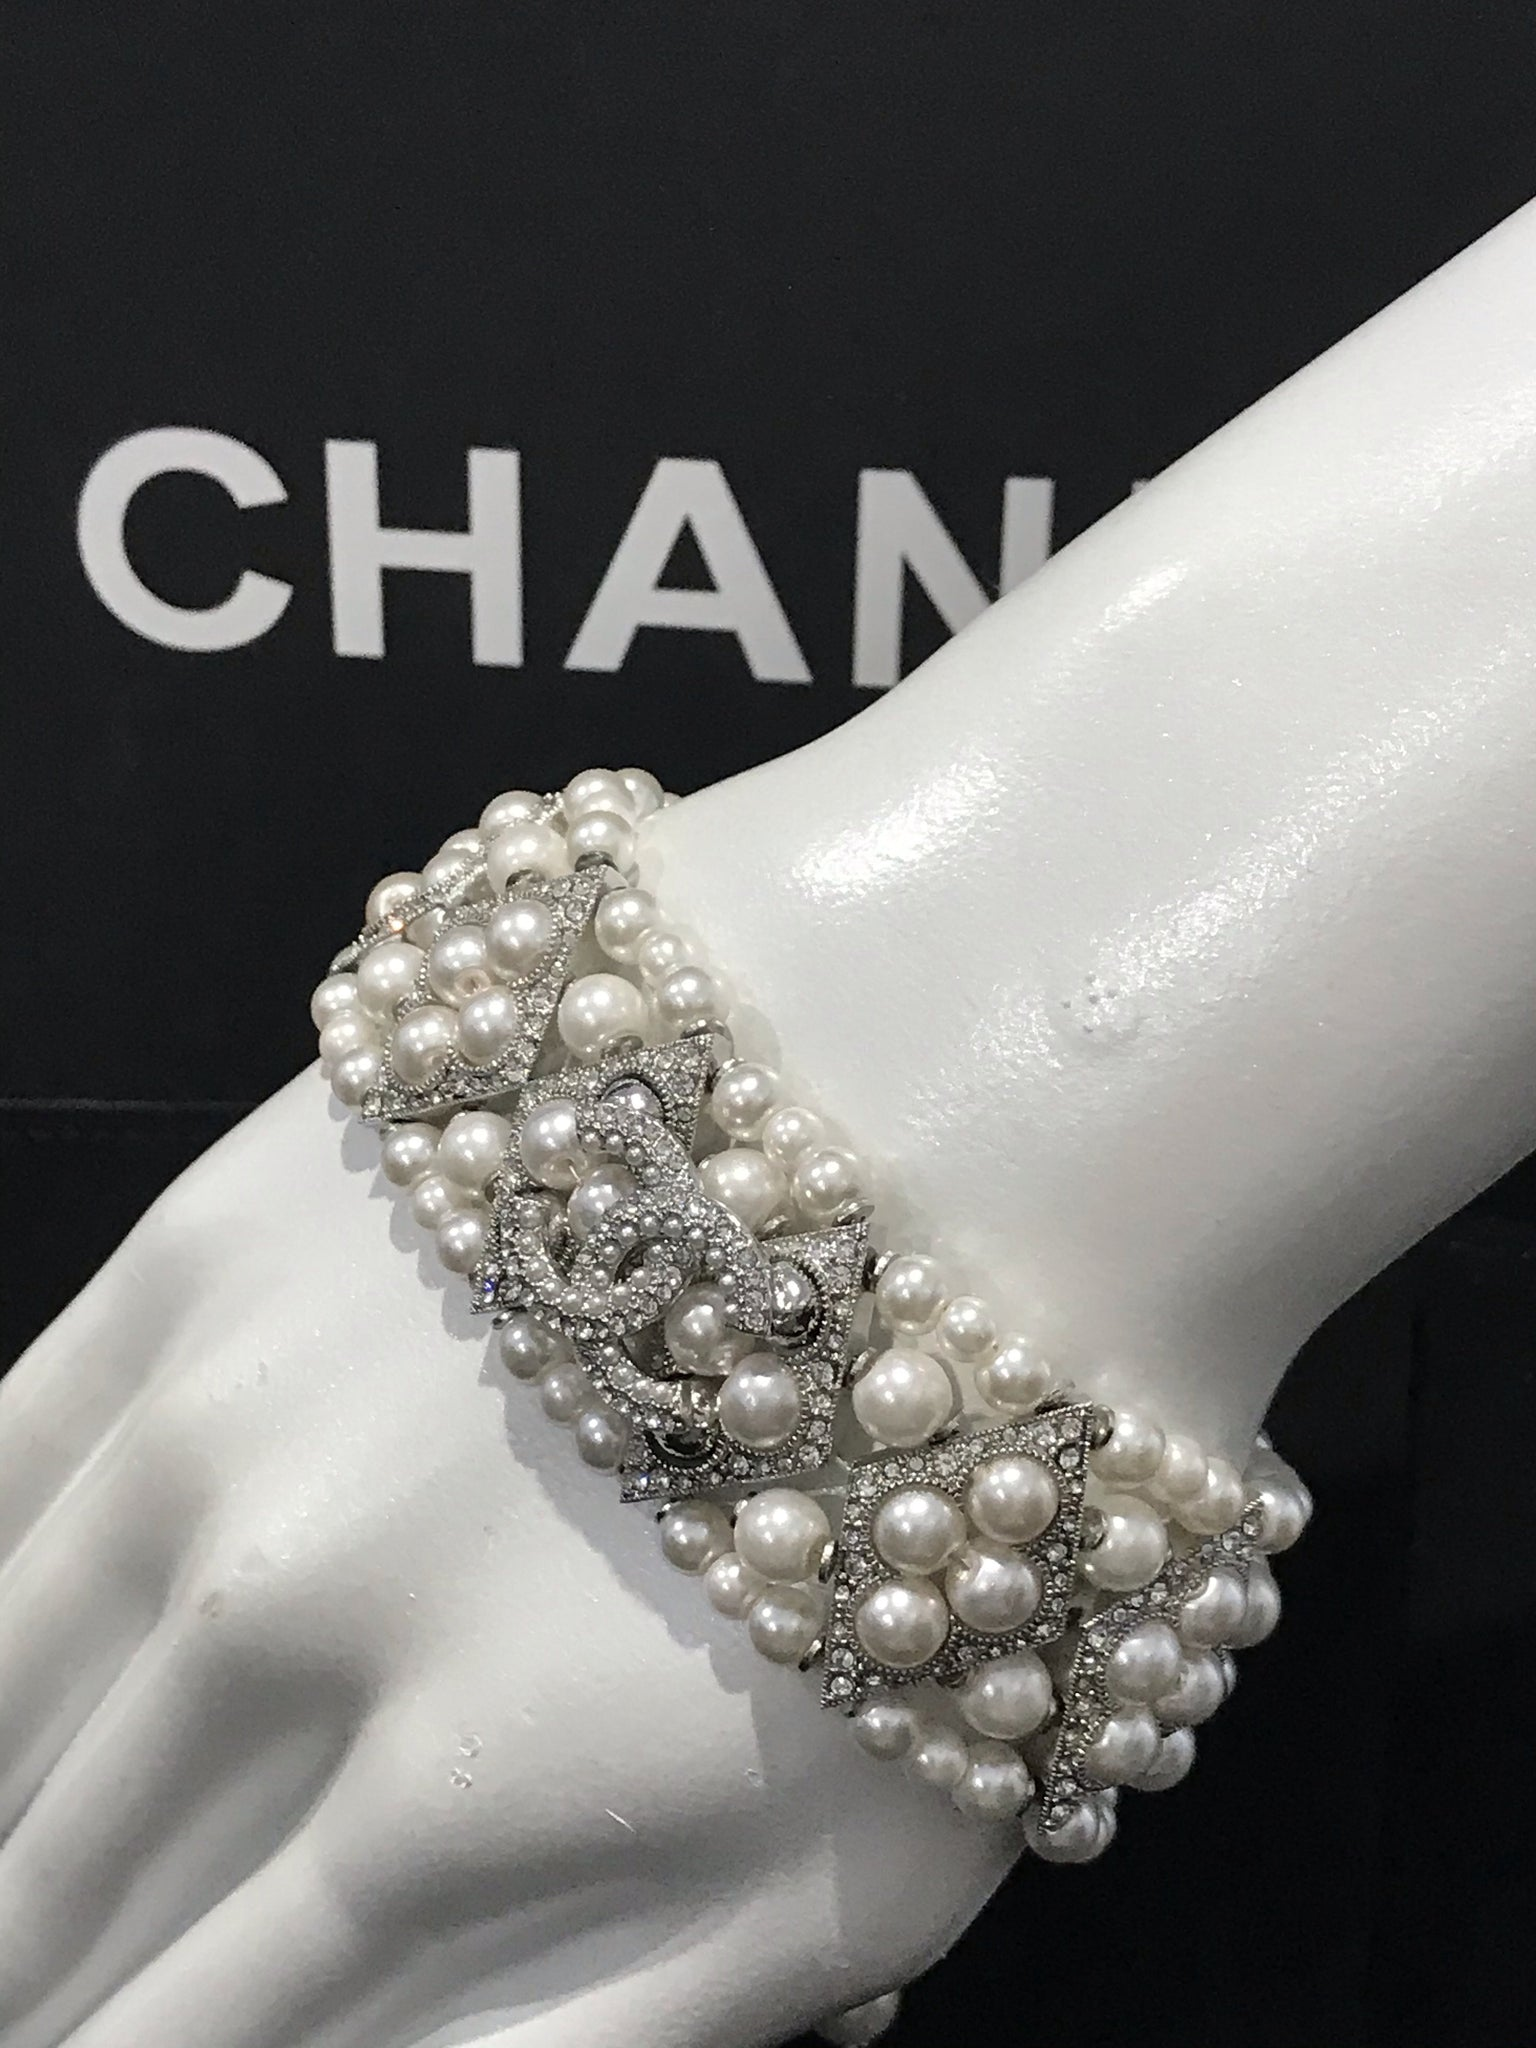 CHANEL PEARL BELT NECKLACE